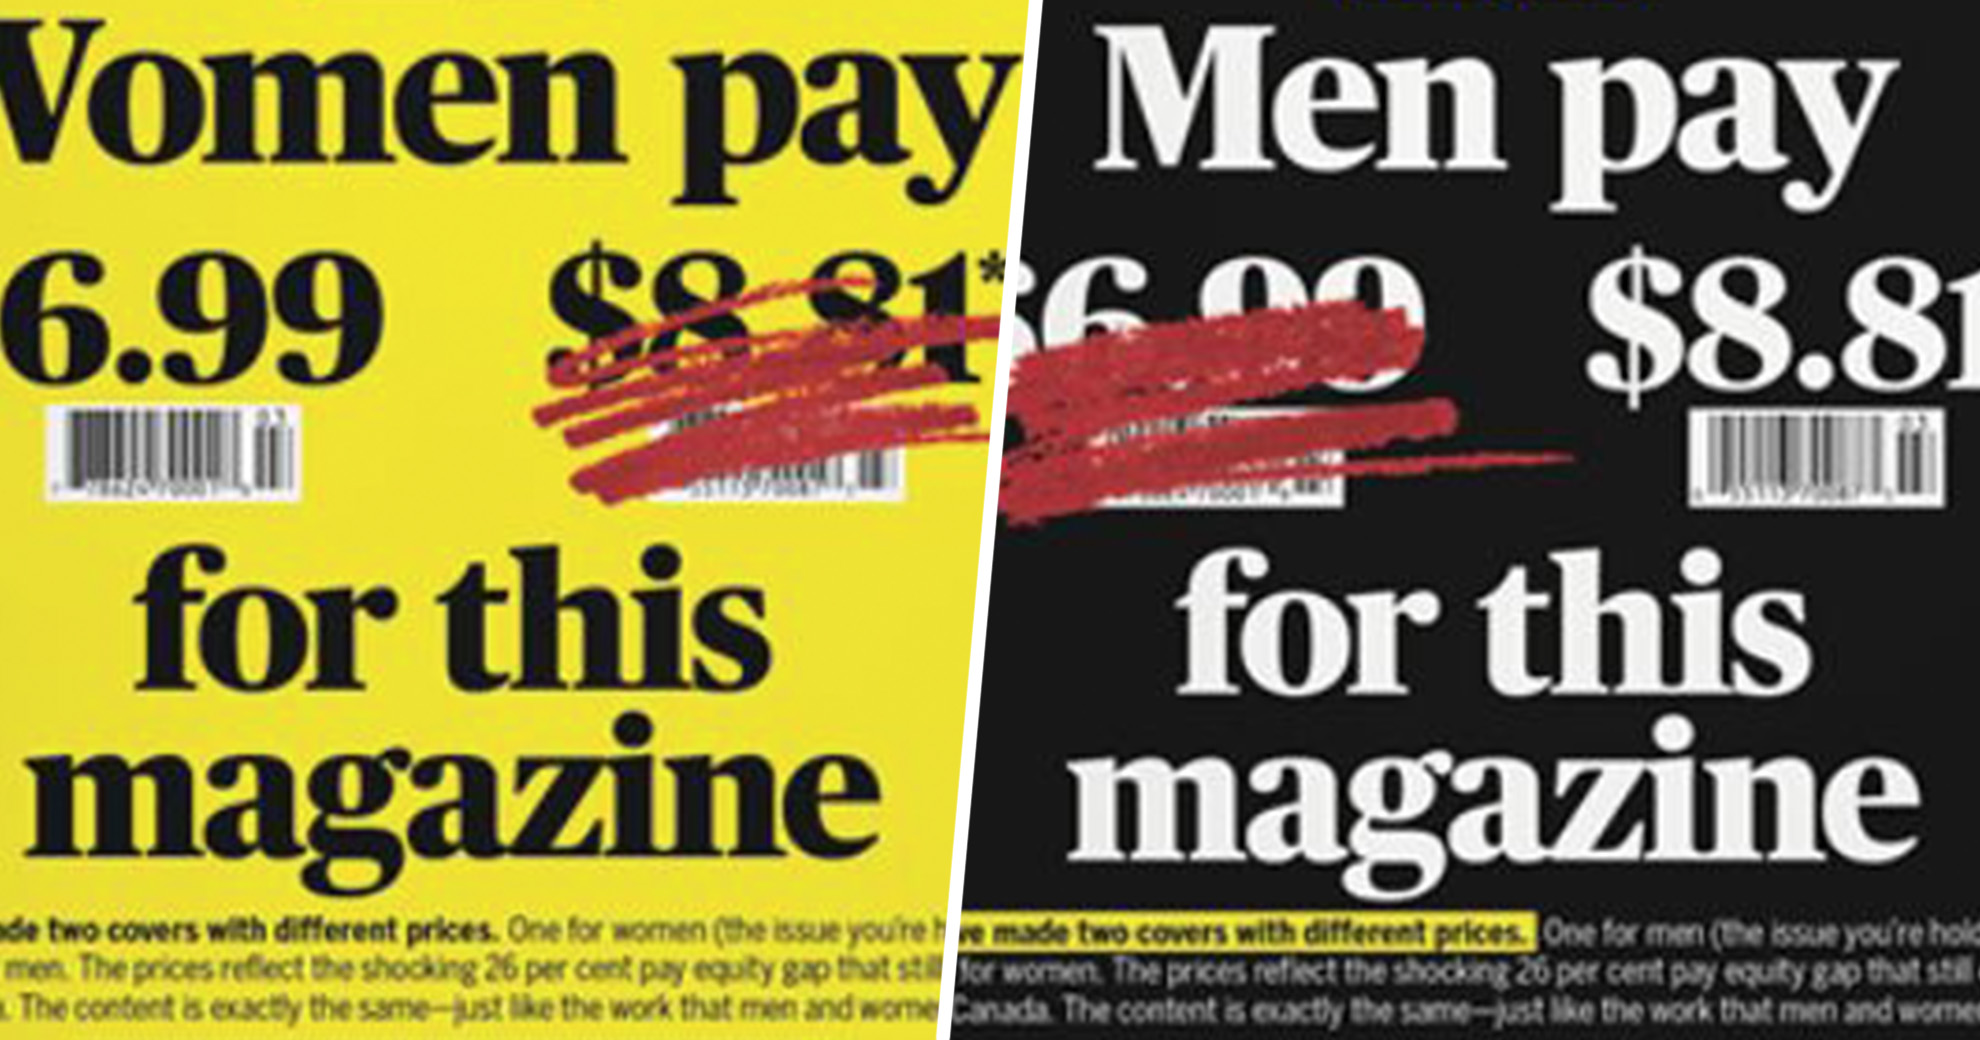 Canadian Magazine Makes A Strong Point By Charging Men More For Their Latest Issue